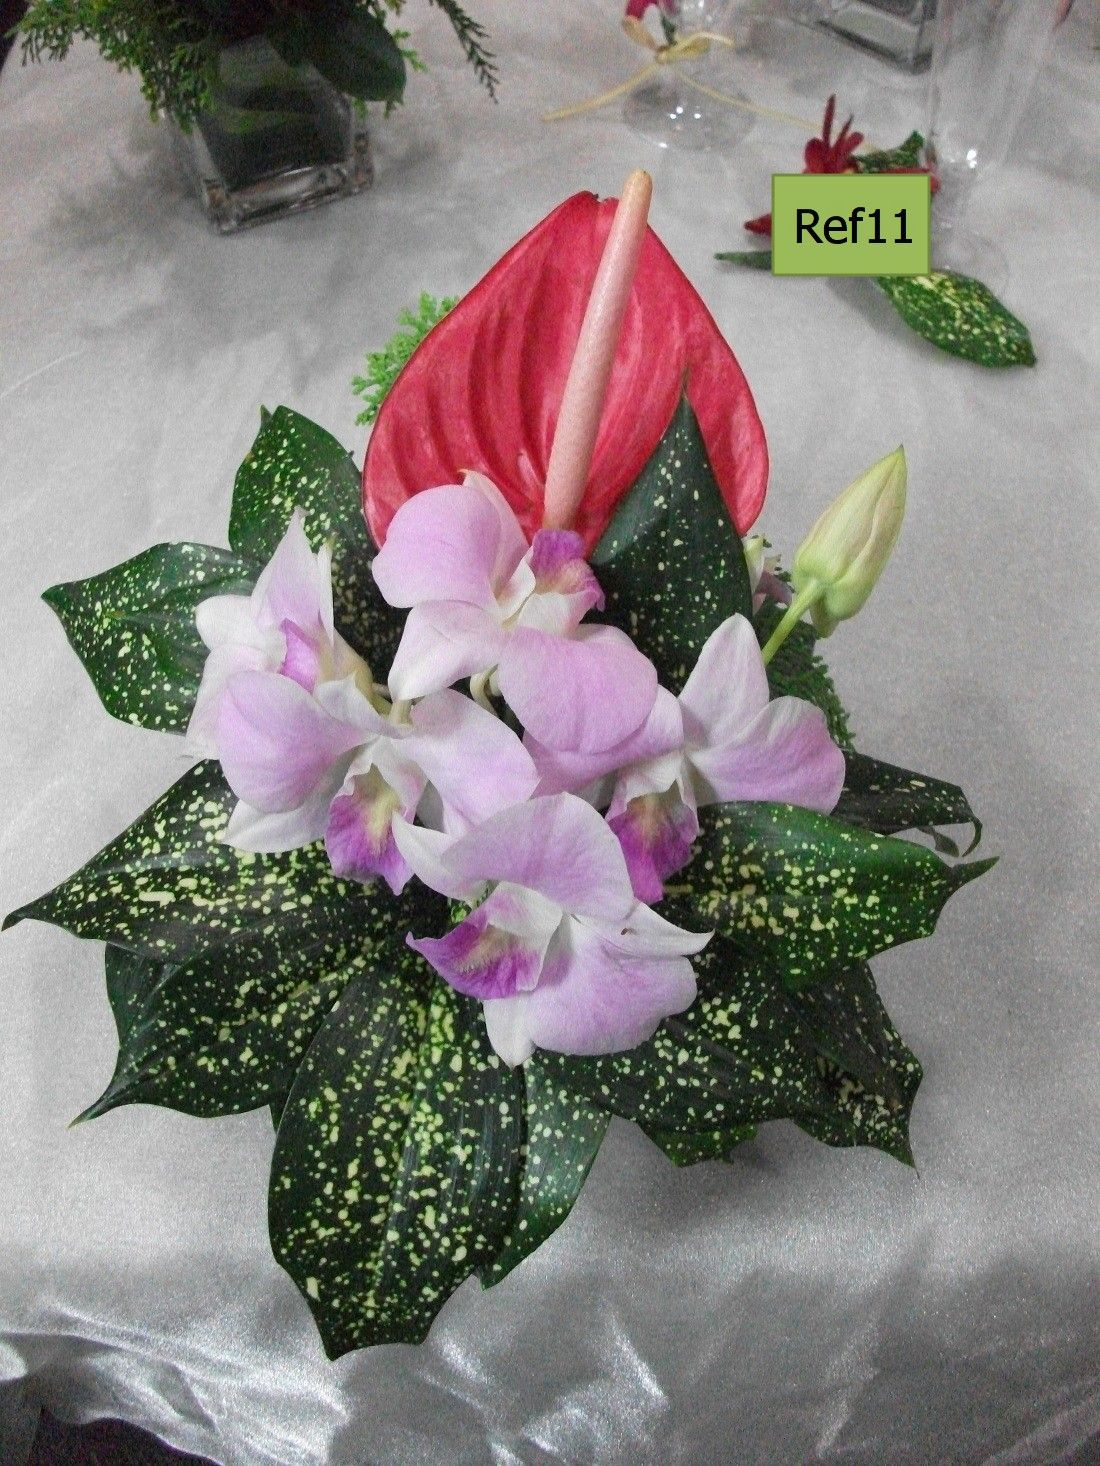 Ref11: Pink Orchids with Anthurium